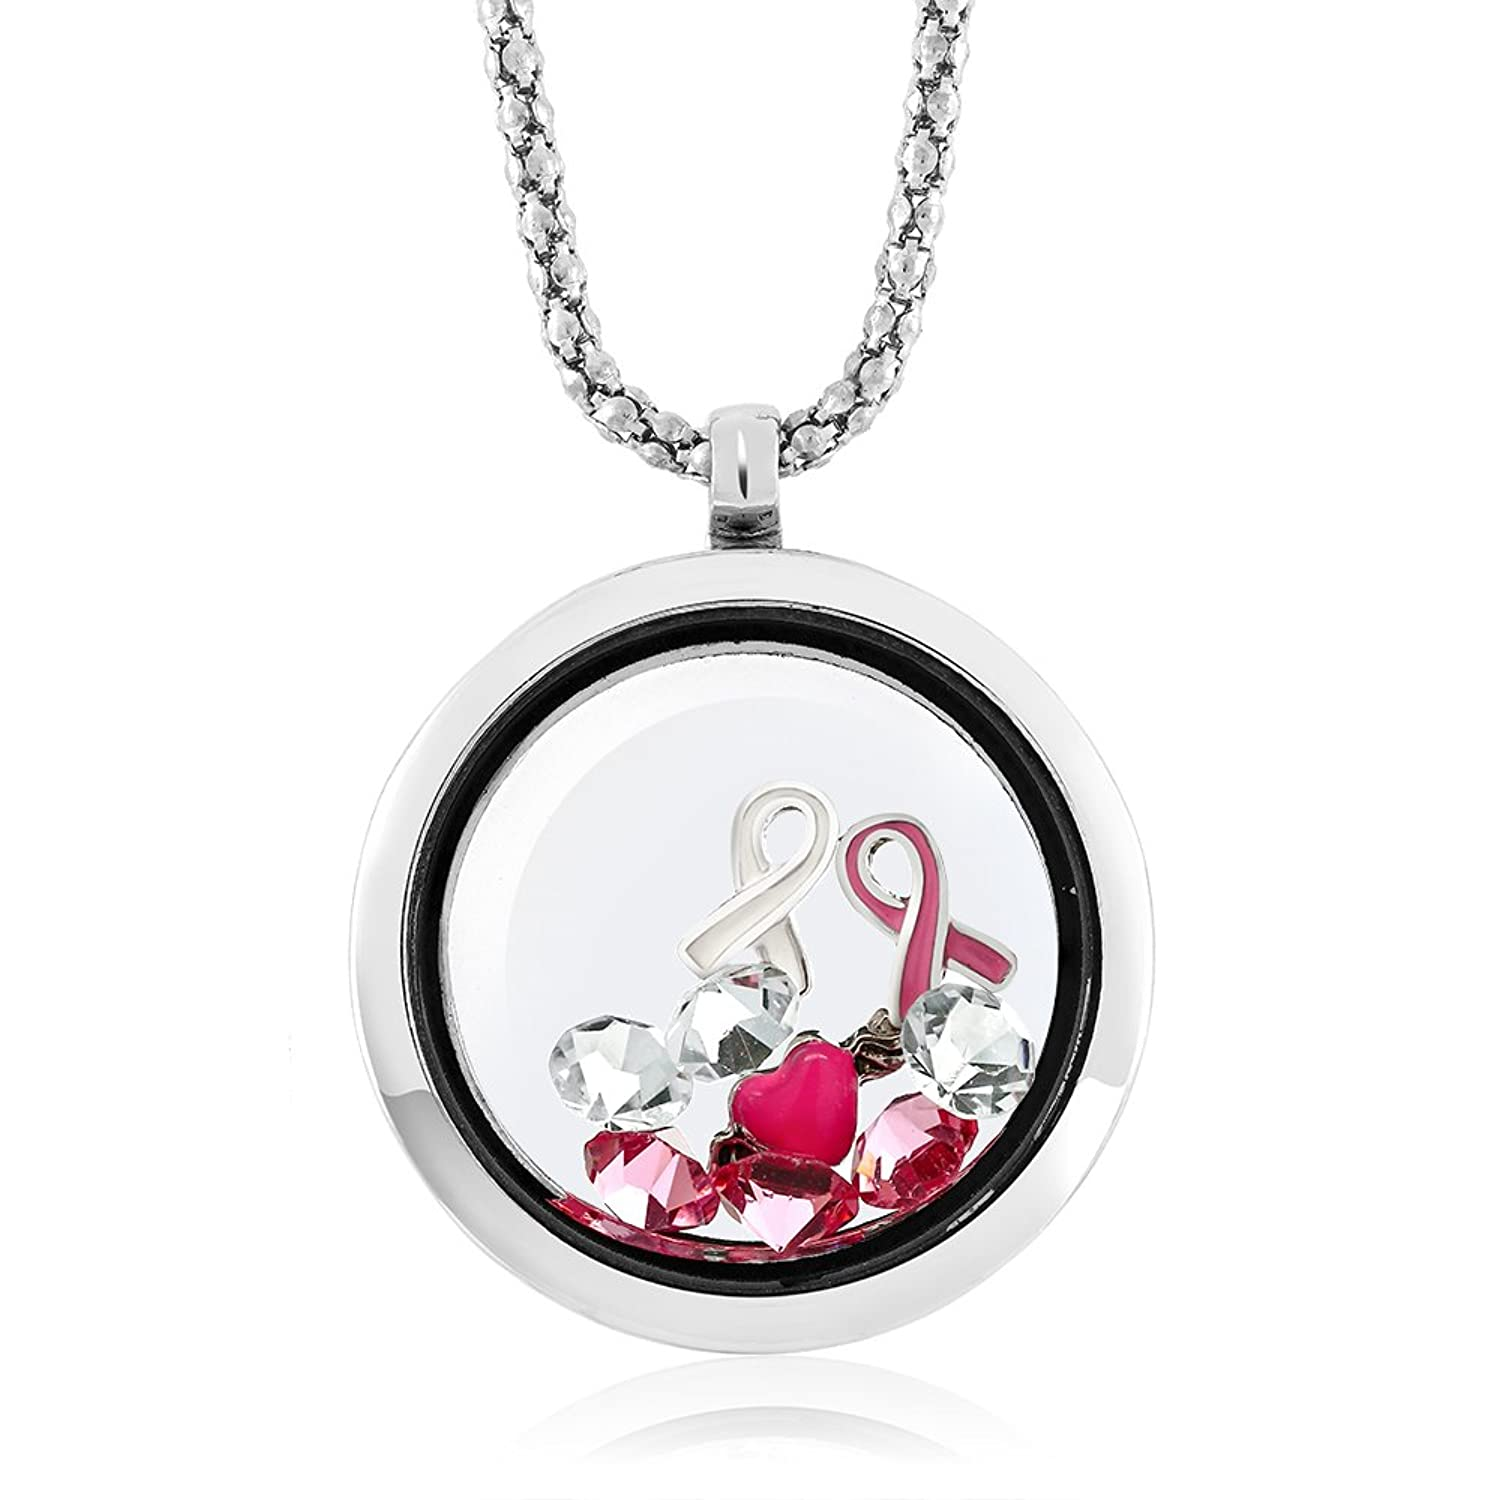 Amazon breast cancer awareness floating ribbon multi colored amazon breast cancer awareness floating ribbon multi colored crystals locket pendant necklace with 24 inch chain jewelry buycottarizona